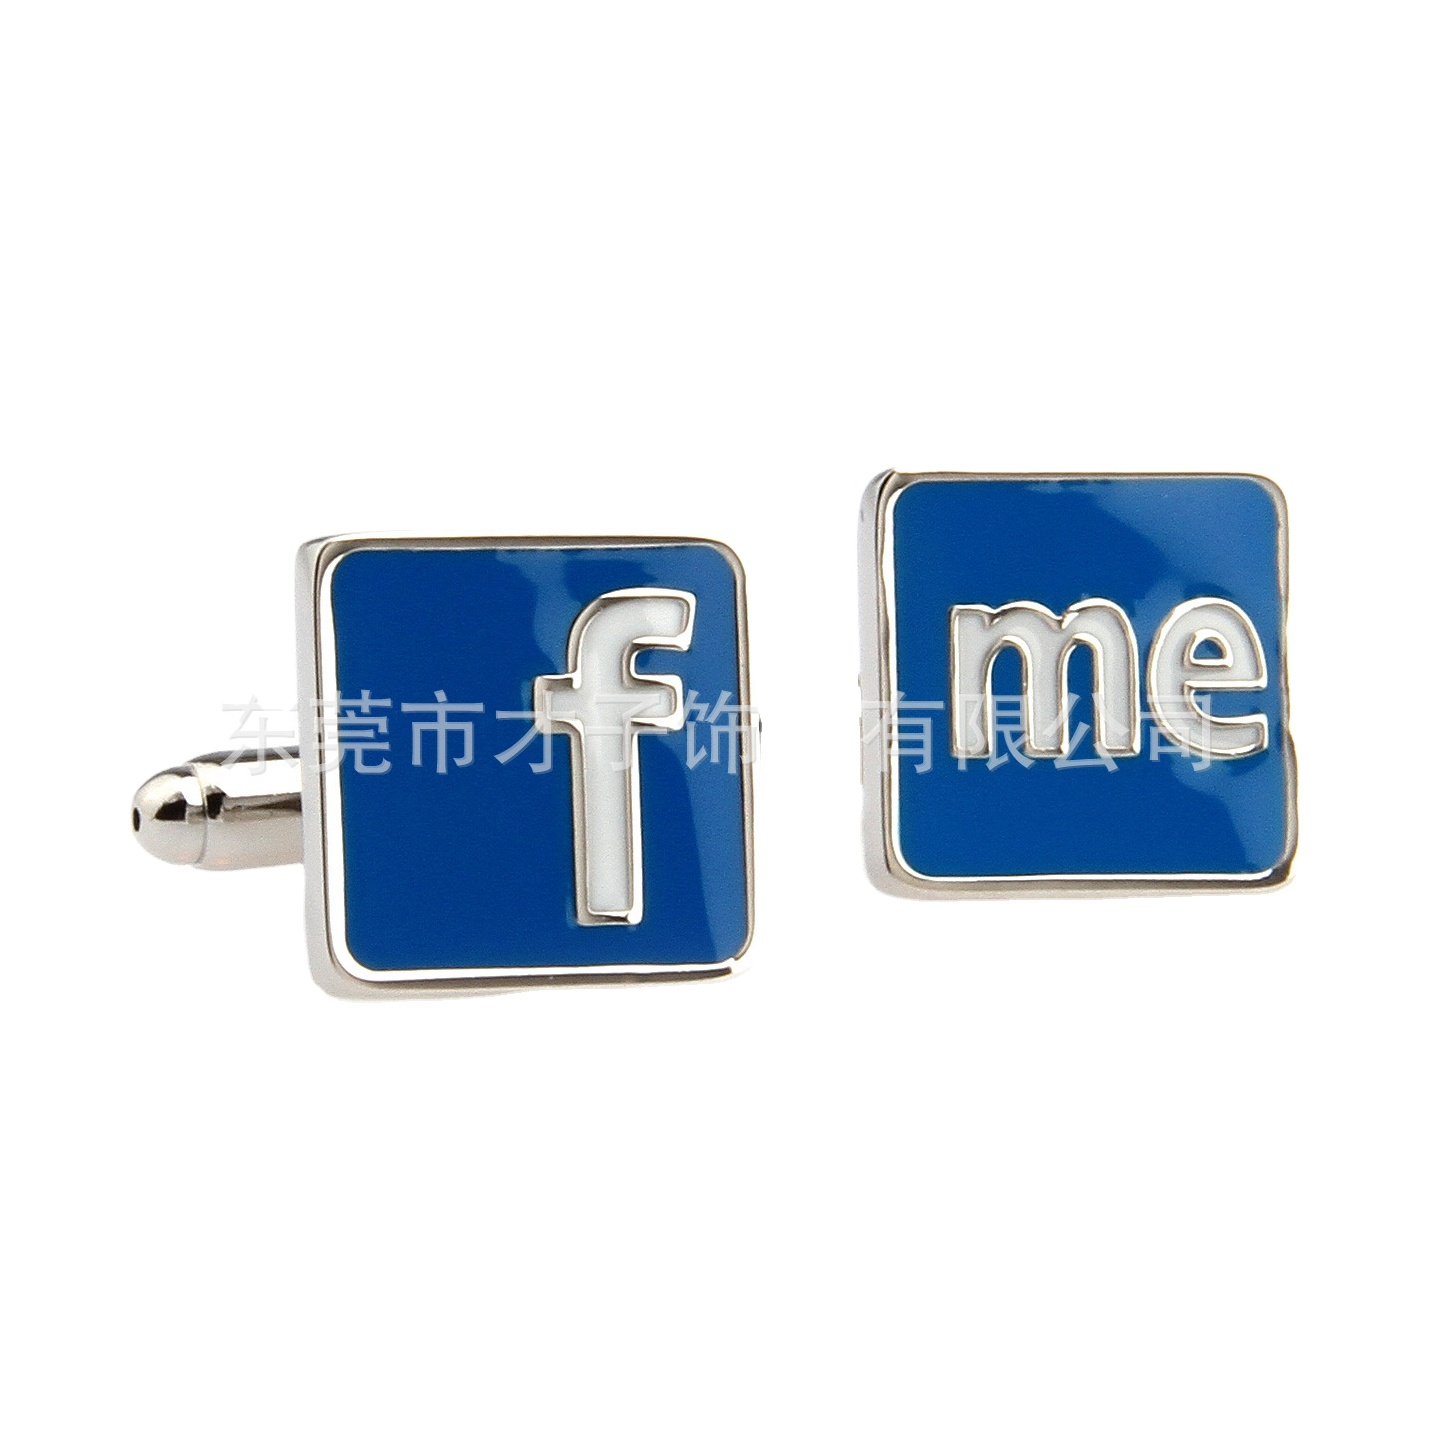 Personalized Acrylic Cufflinks  Custom Letter and Date Engraved